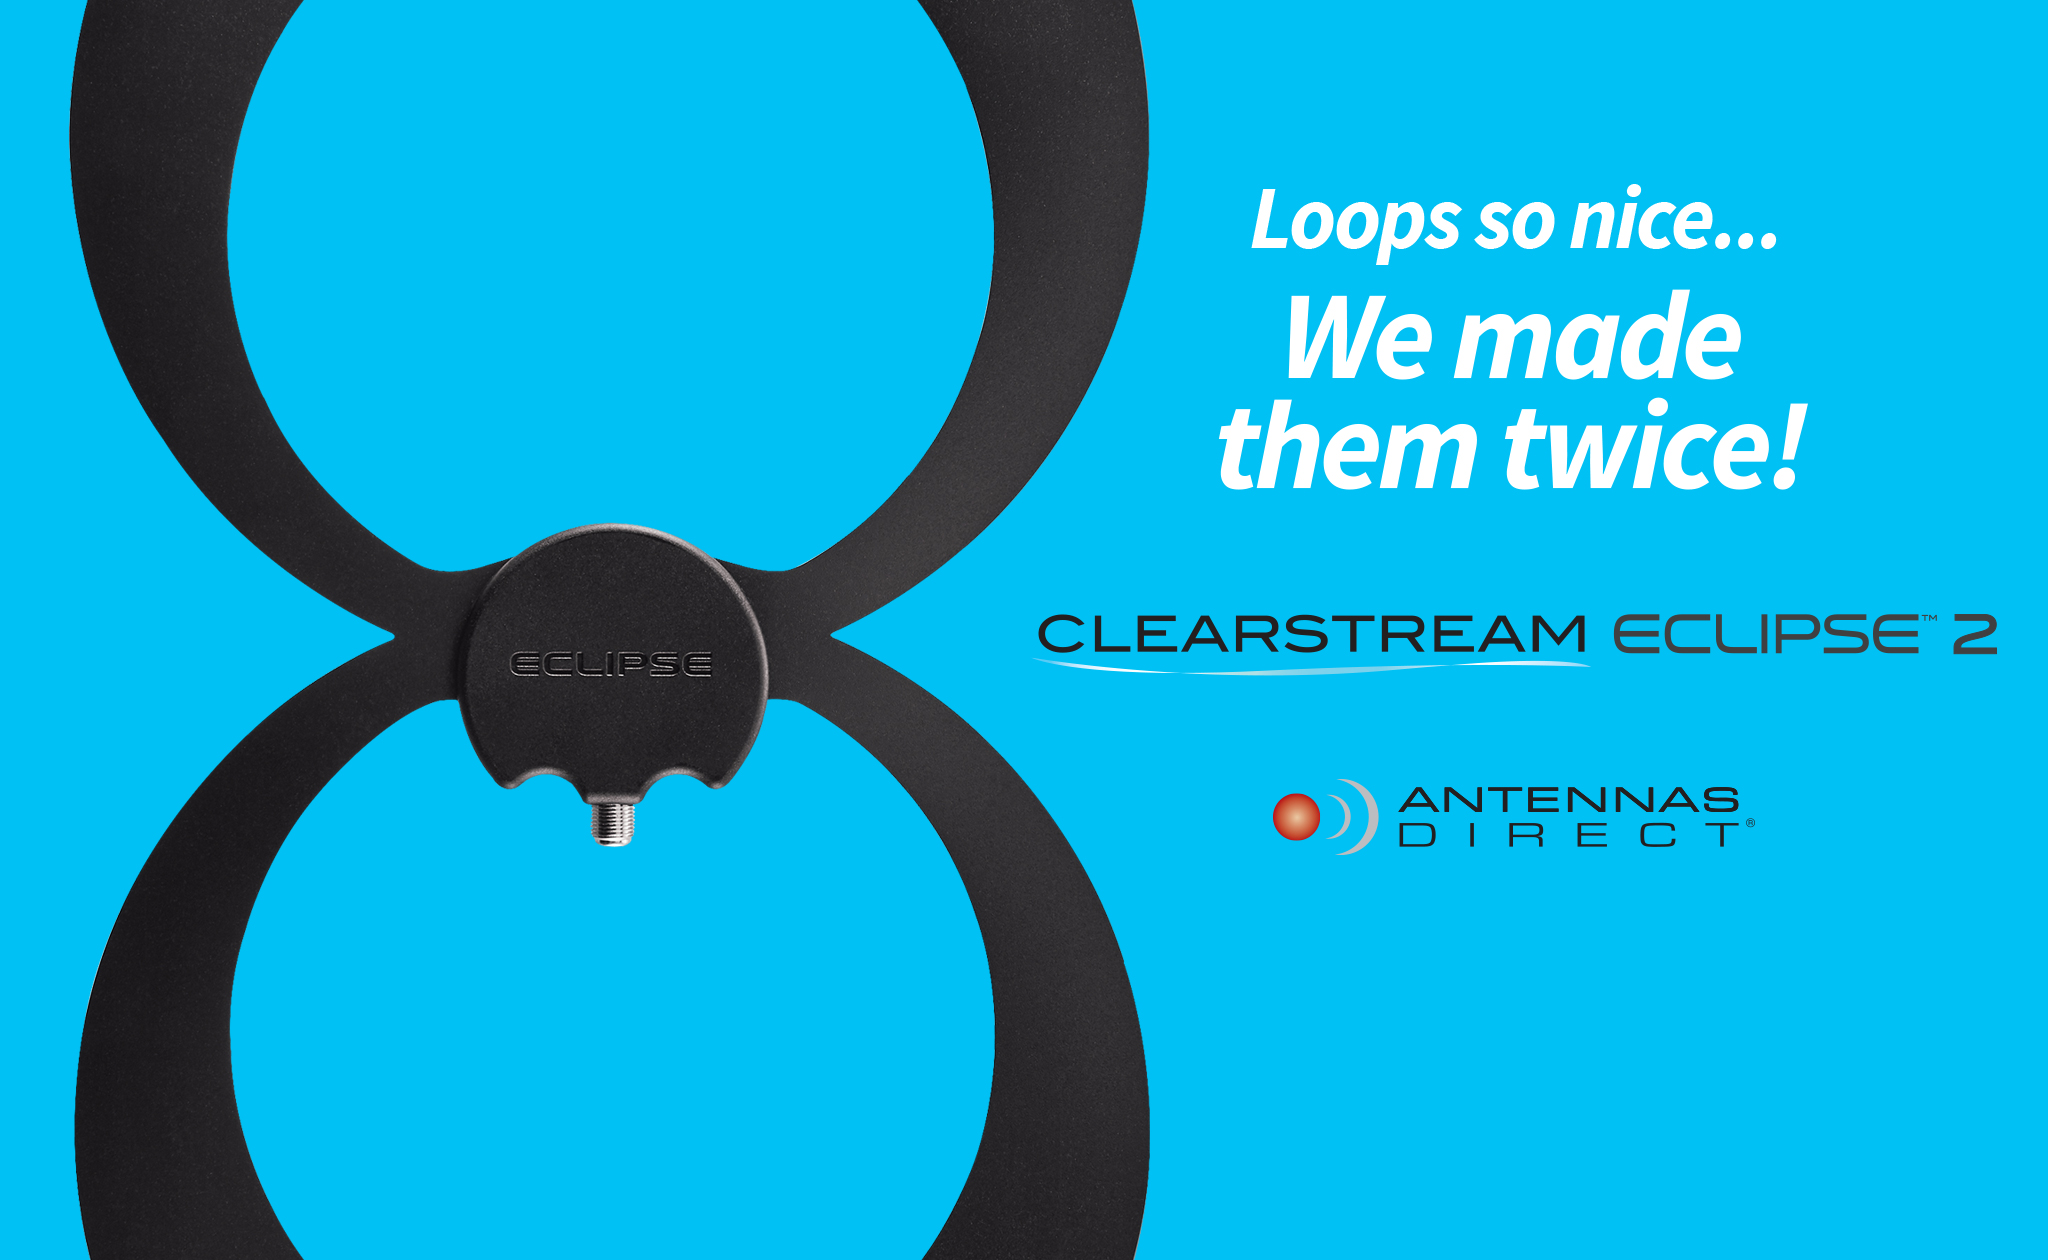 Results image of Clearstream Eclipse loops so nice we made them twice